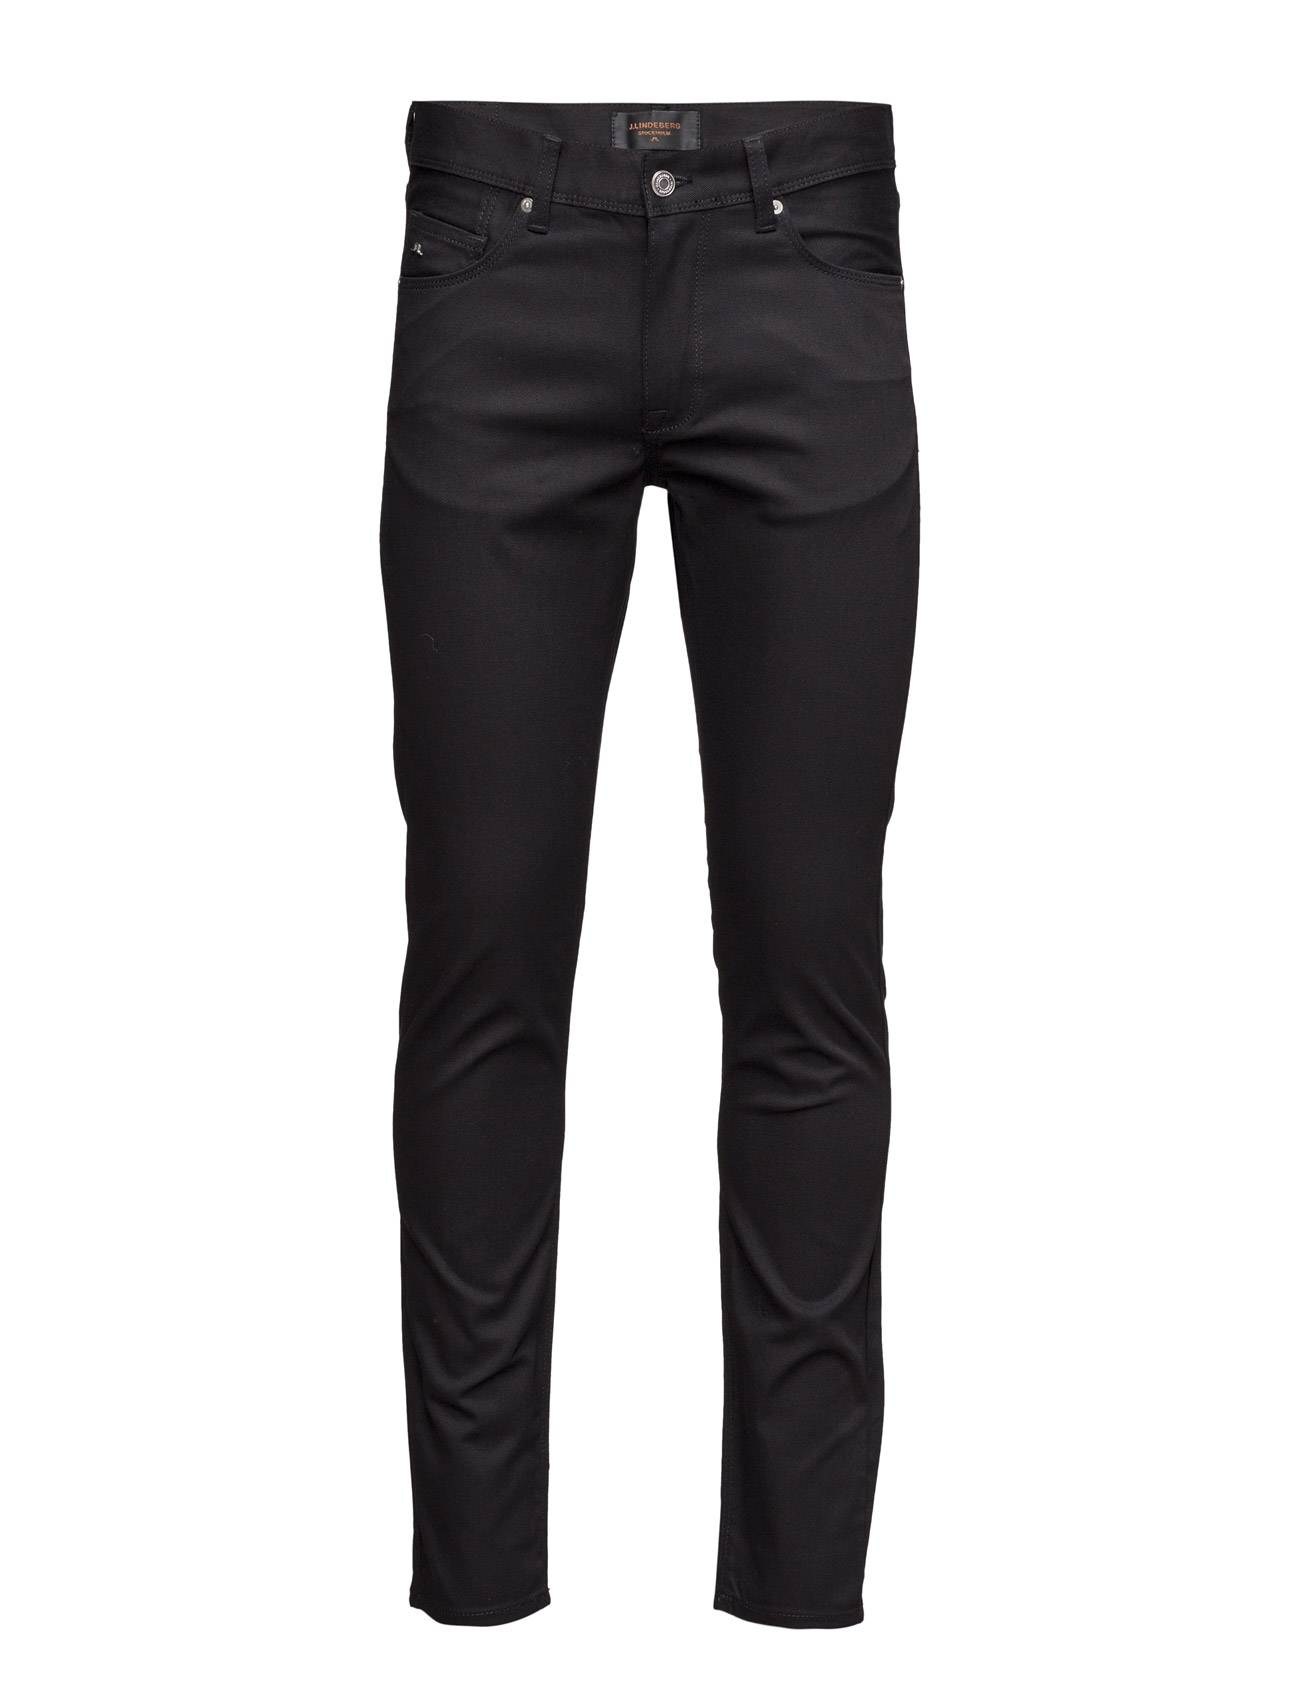 J. Lindeberg Damien Black Stretch Denim